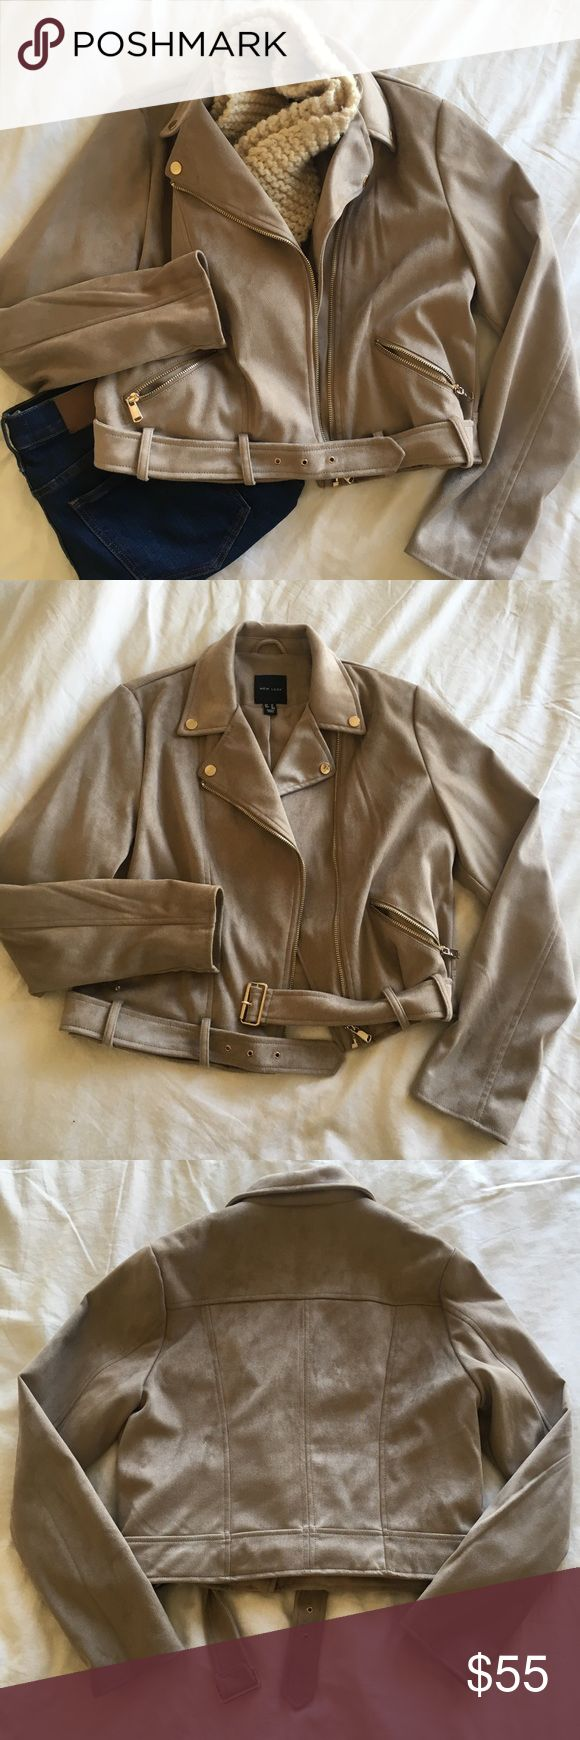 """Faux Suede Biker Jacket Super soft """"microsuede"""" jacket from ASOS. Worn only once! Light gold hardware. The buckled belt is removable if you don't want to wear it. Seriously an AMAZING stylish jacket for fall and winter! Asos Jackets & Coats"""